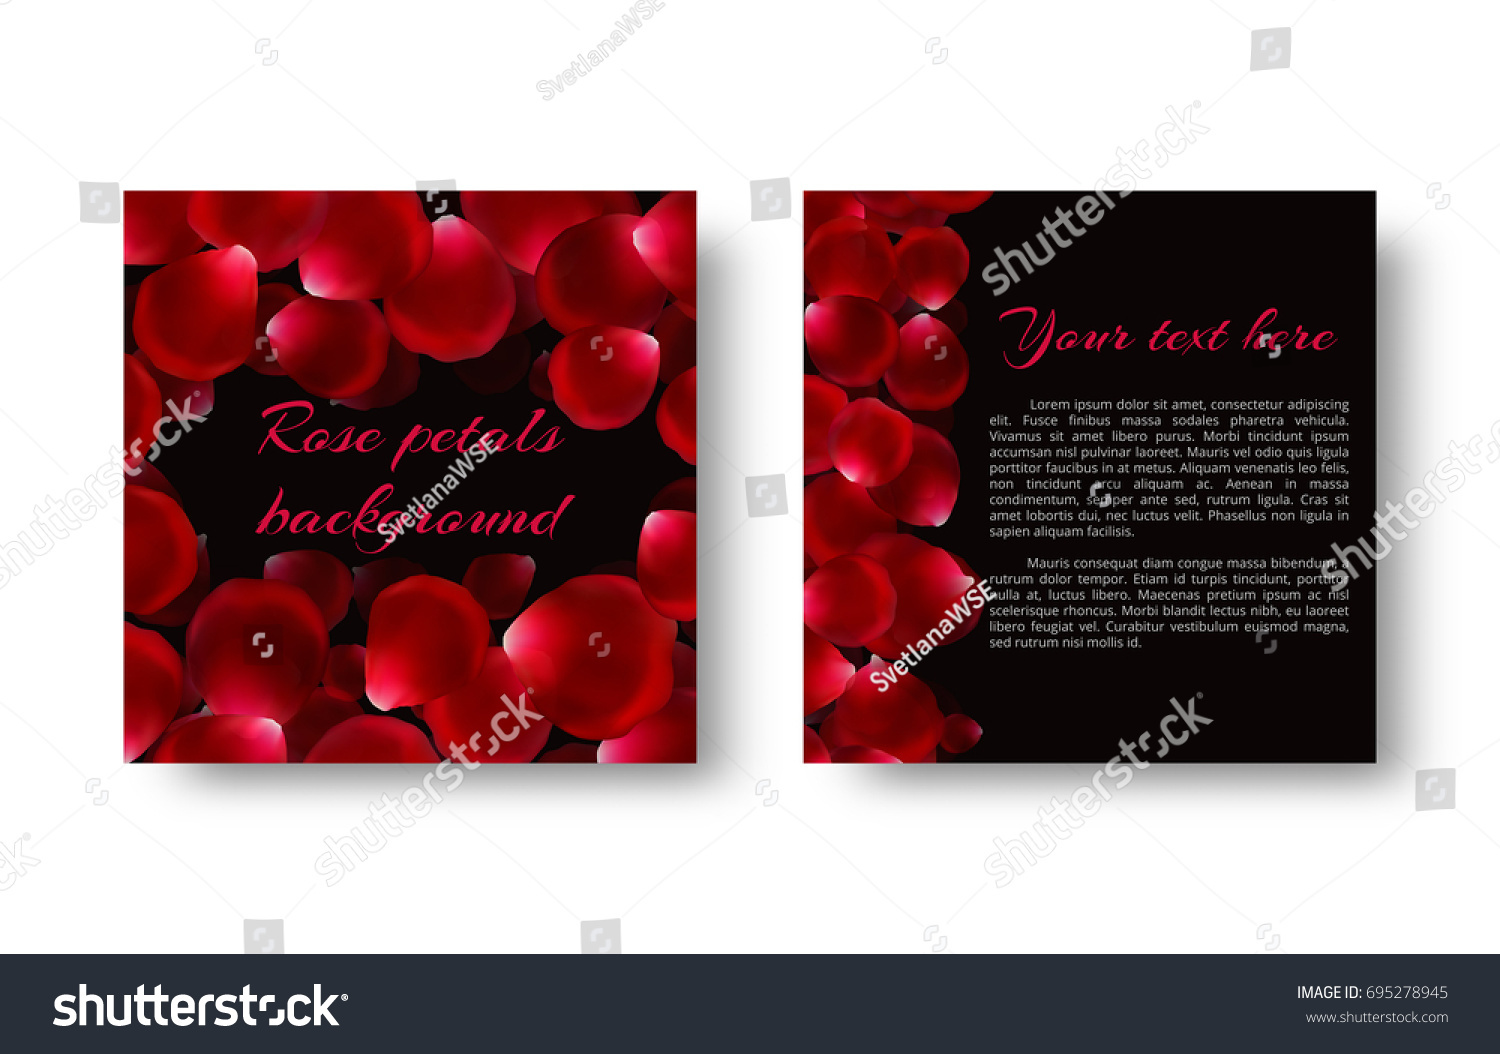 Background Red Rose Petals Romantic Greetings Stock Vector 695278945